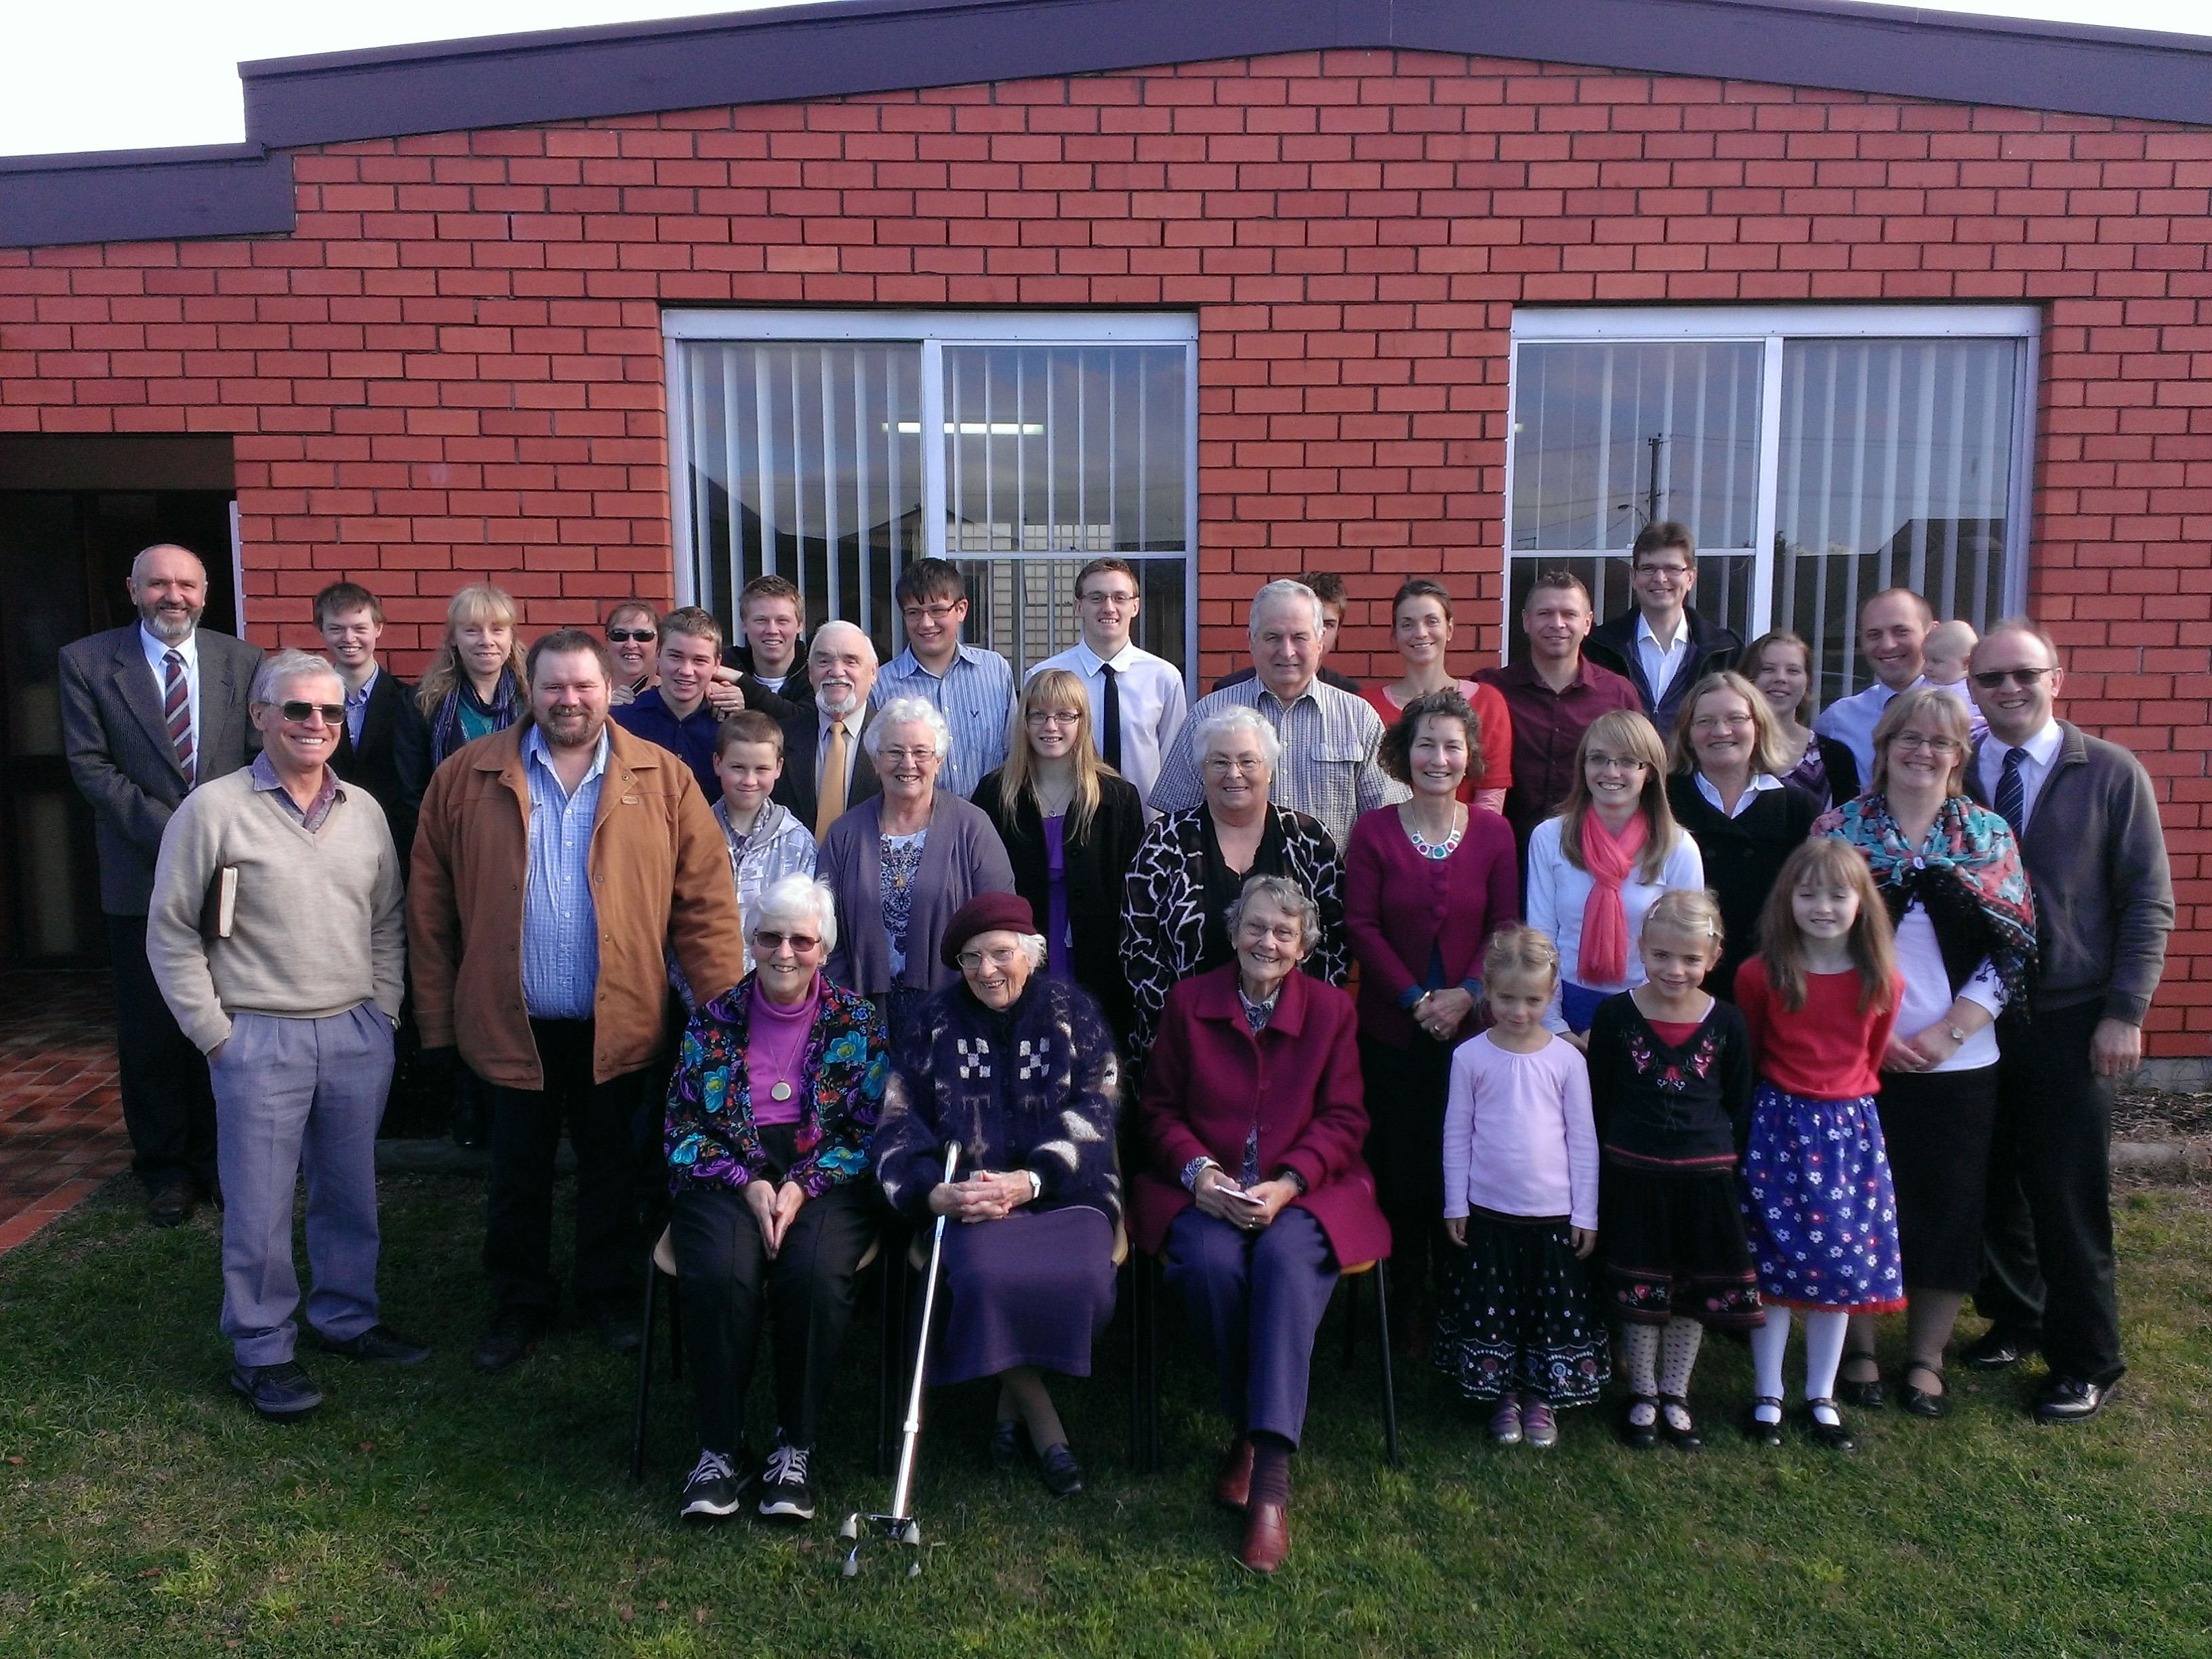 Ulverstone Congregation